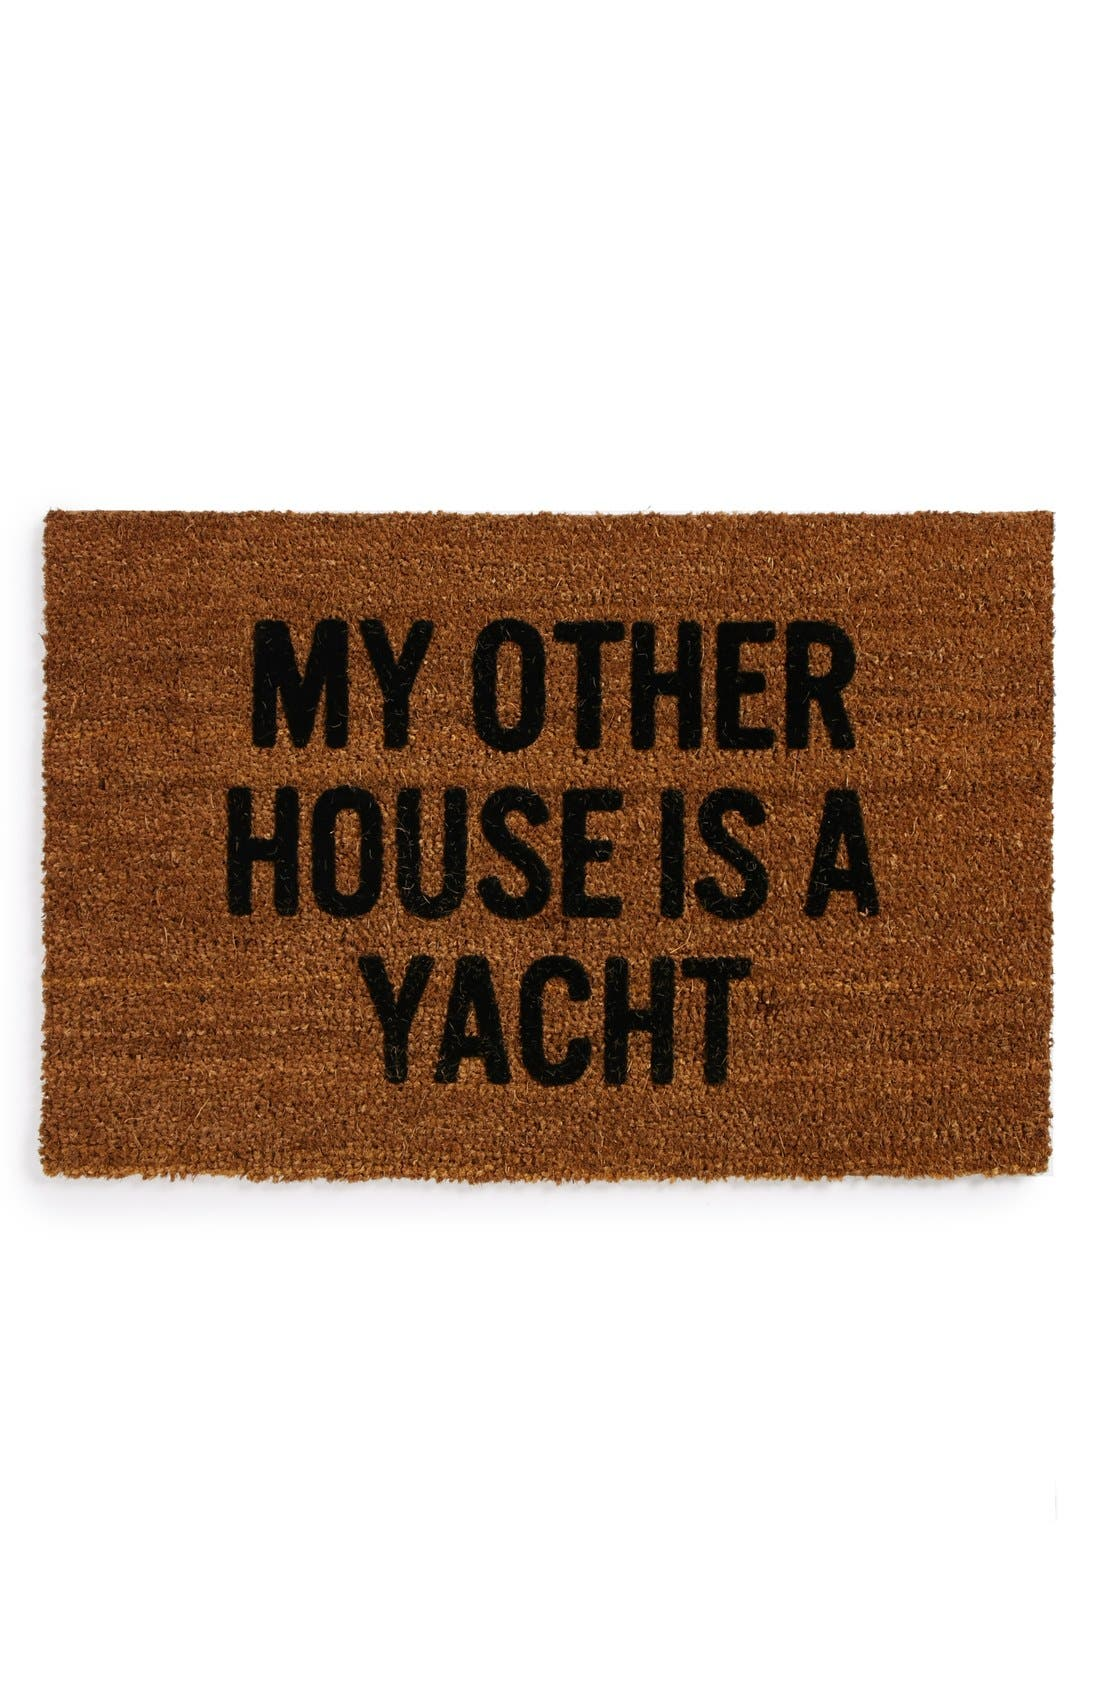 Alternate Image 1 Selected - Reed Wilson Design 'Yacht' Doormat